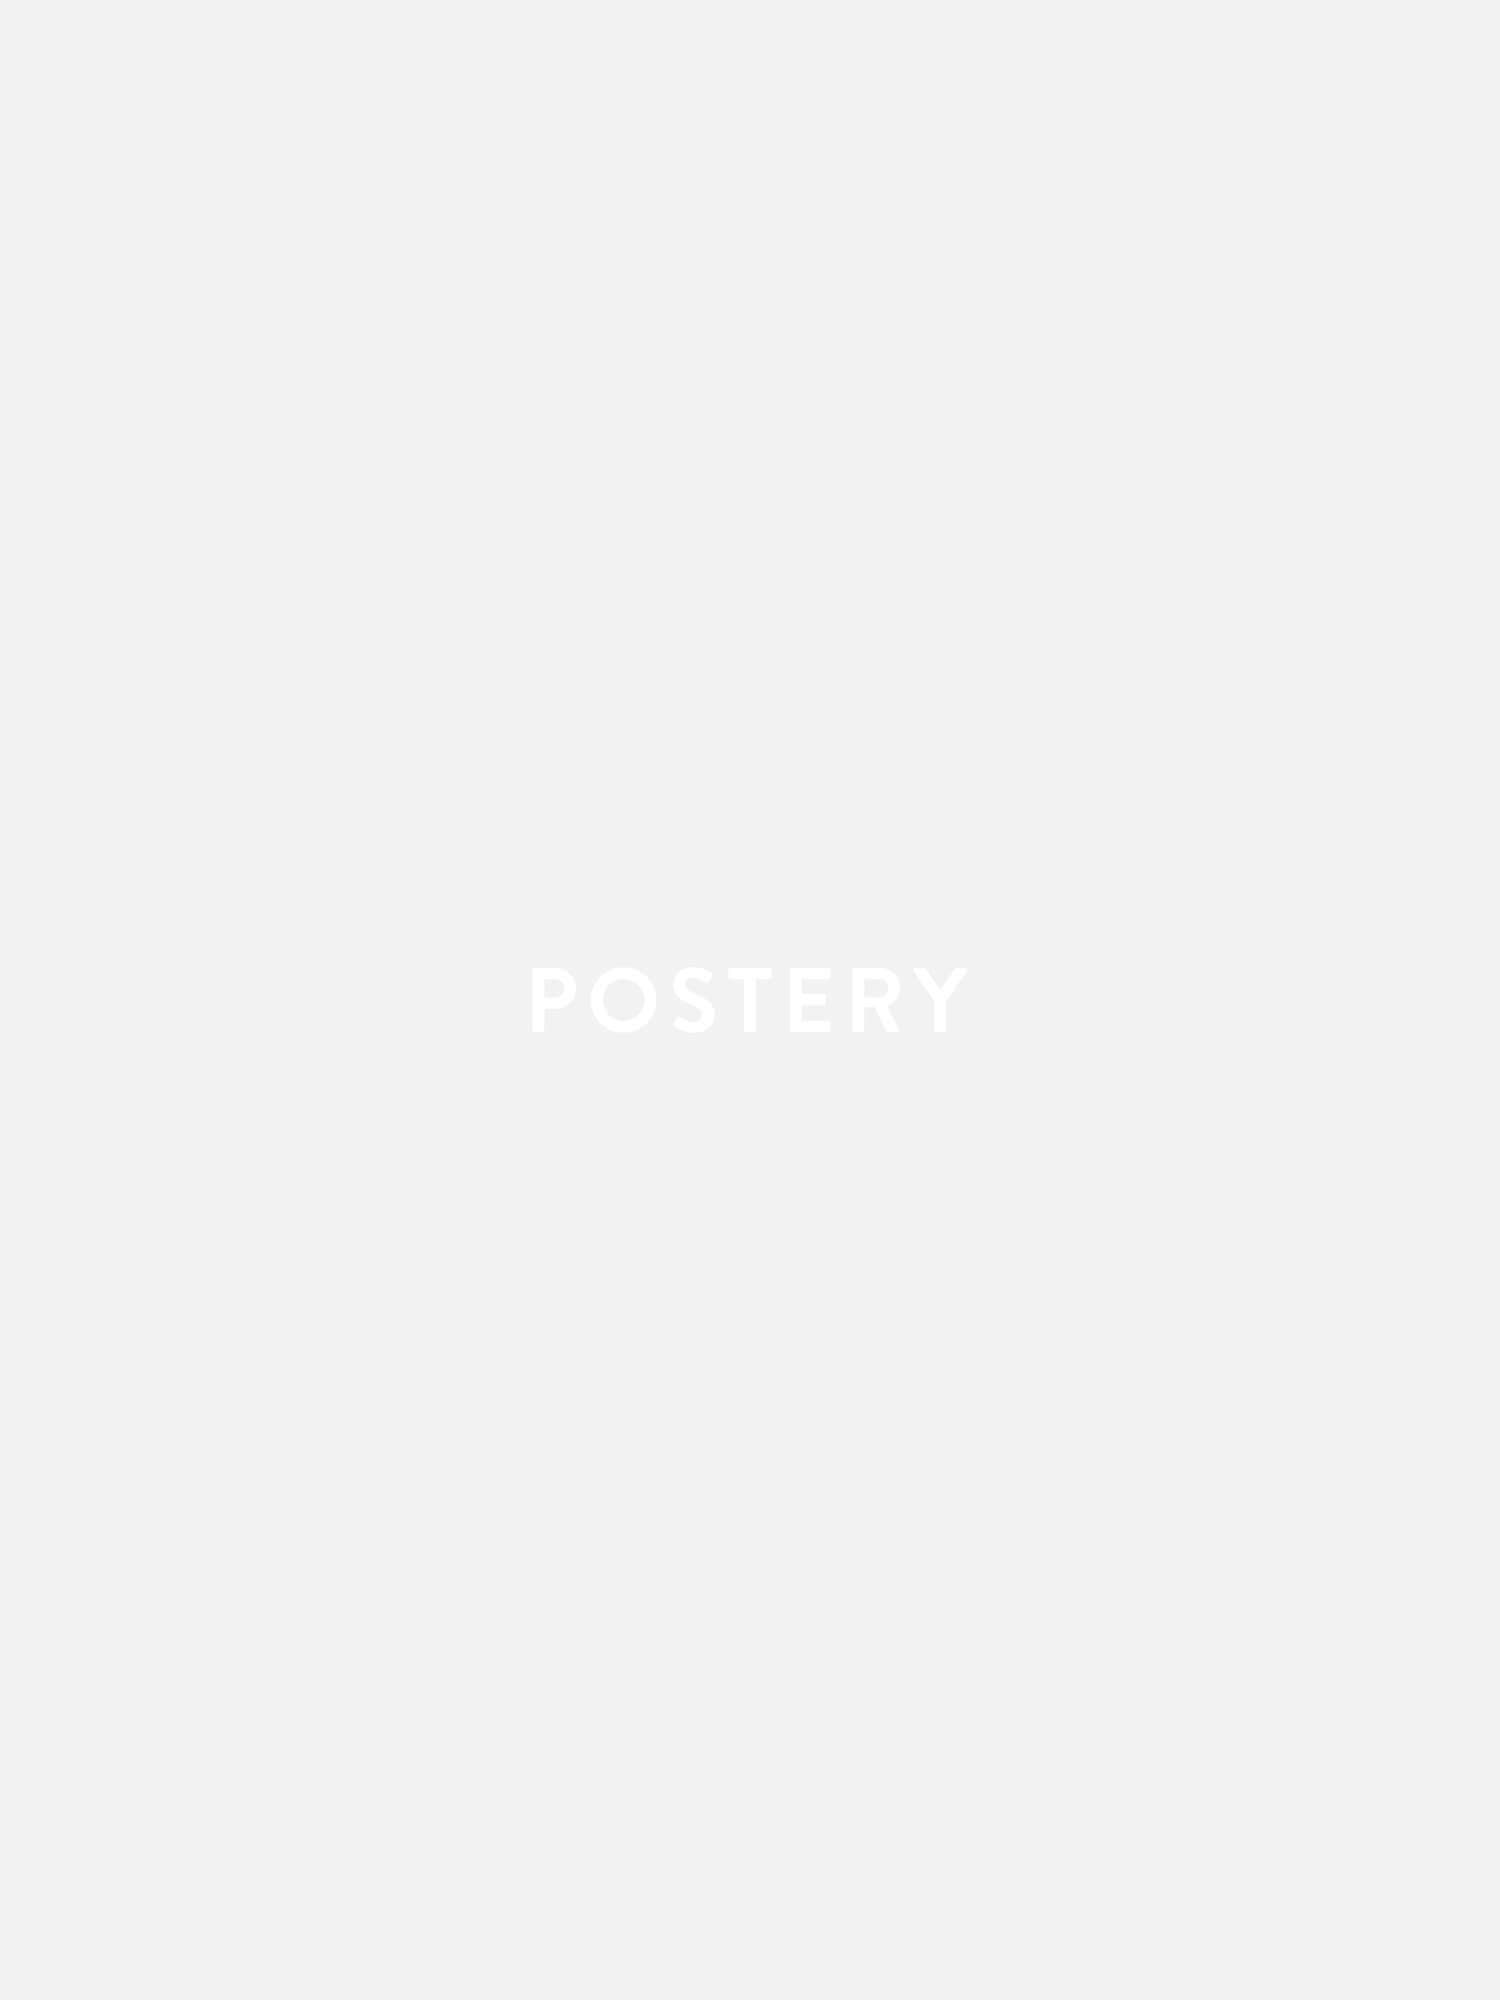 Relaxing Leopard Poster